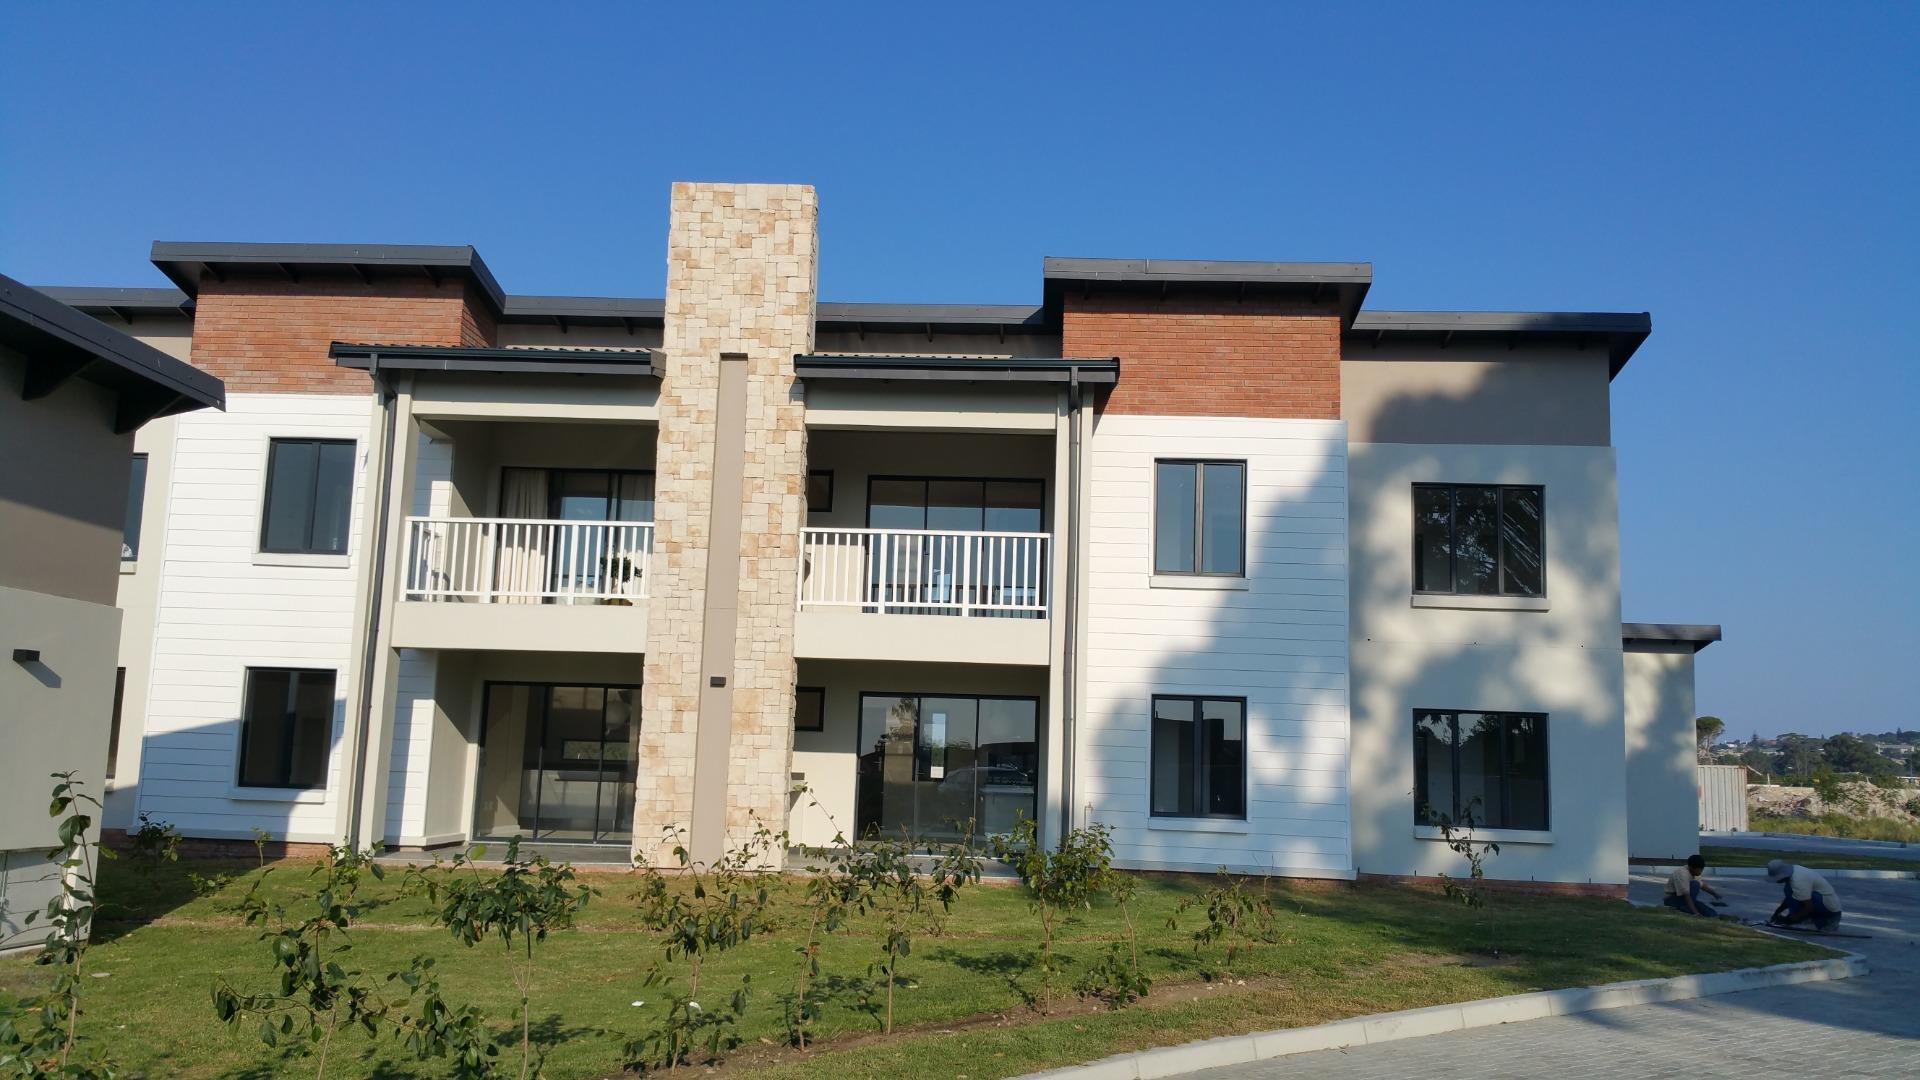 2 Bedroom Apartment for Sale in Fairview, Port Elizabeth - Eastern Cape